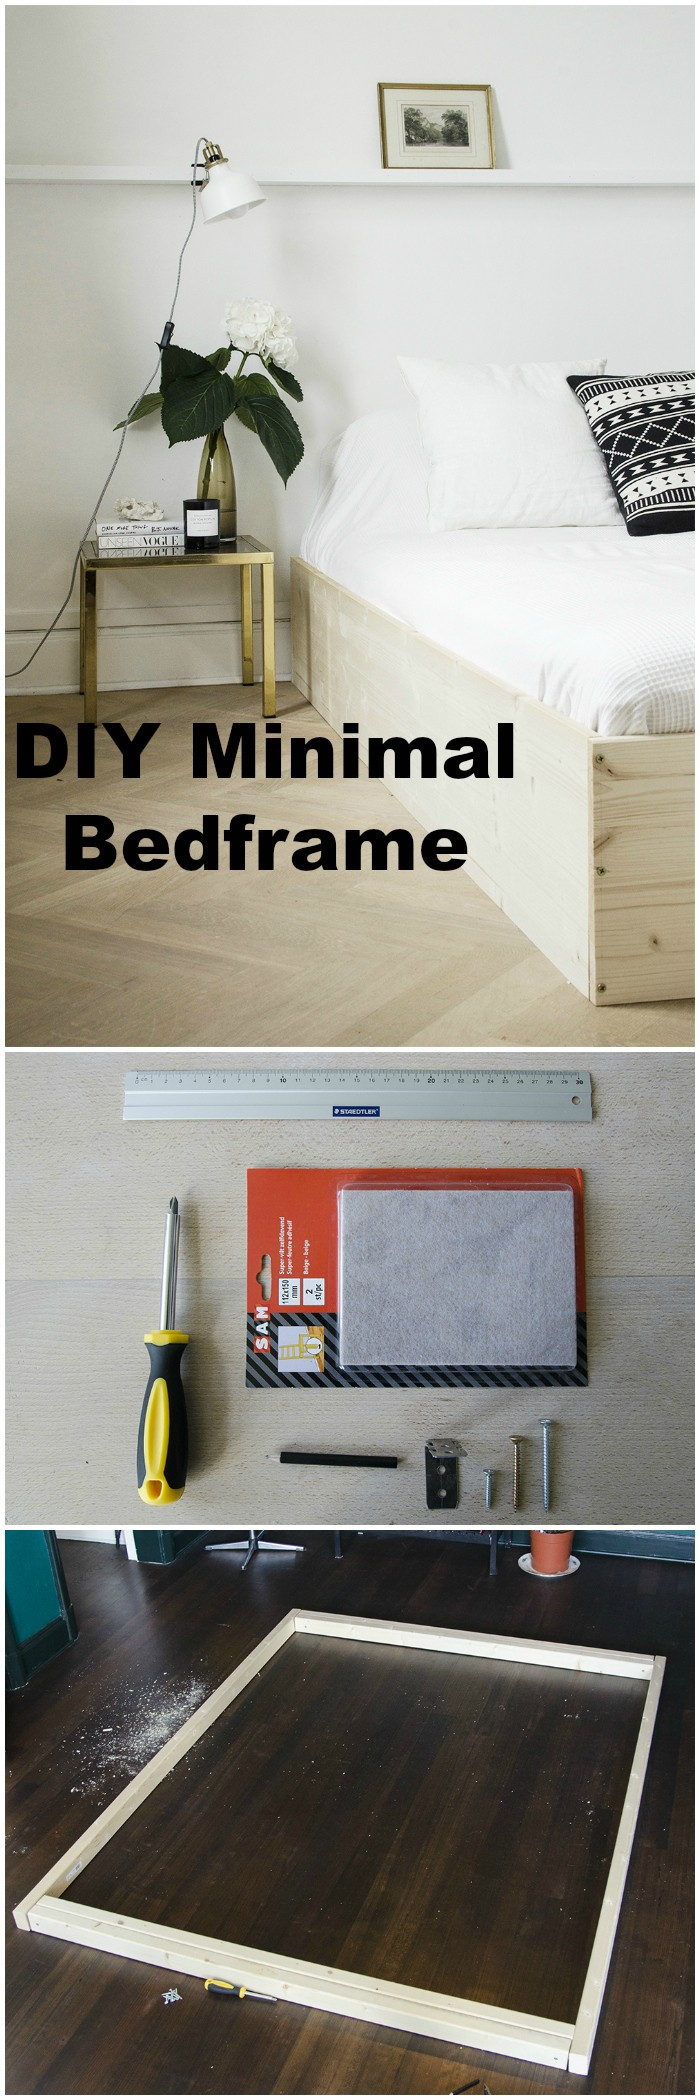 DIY Minimal Bedframe - diy bed frame - DIY Bed Plans -diy bed